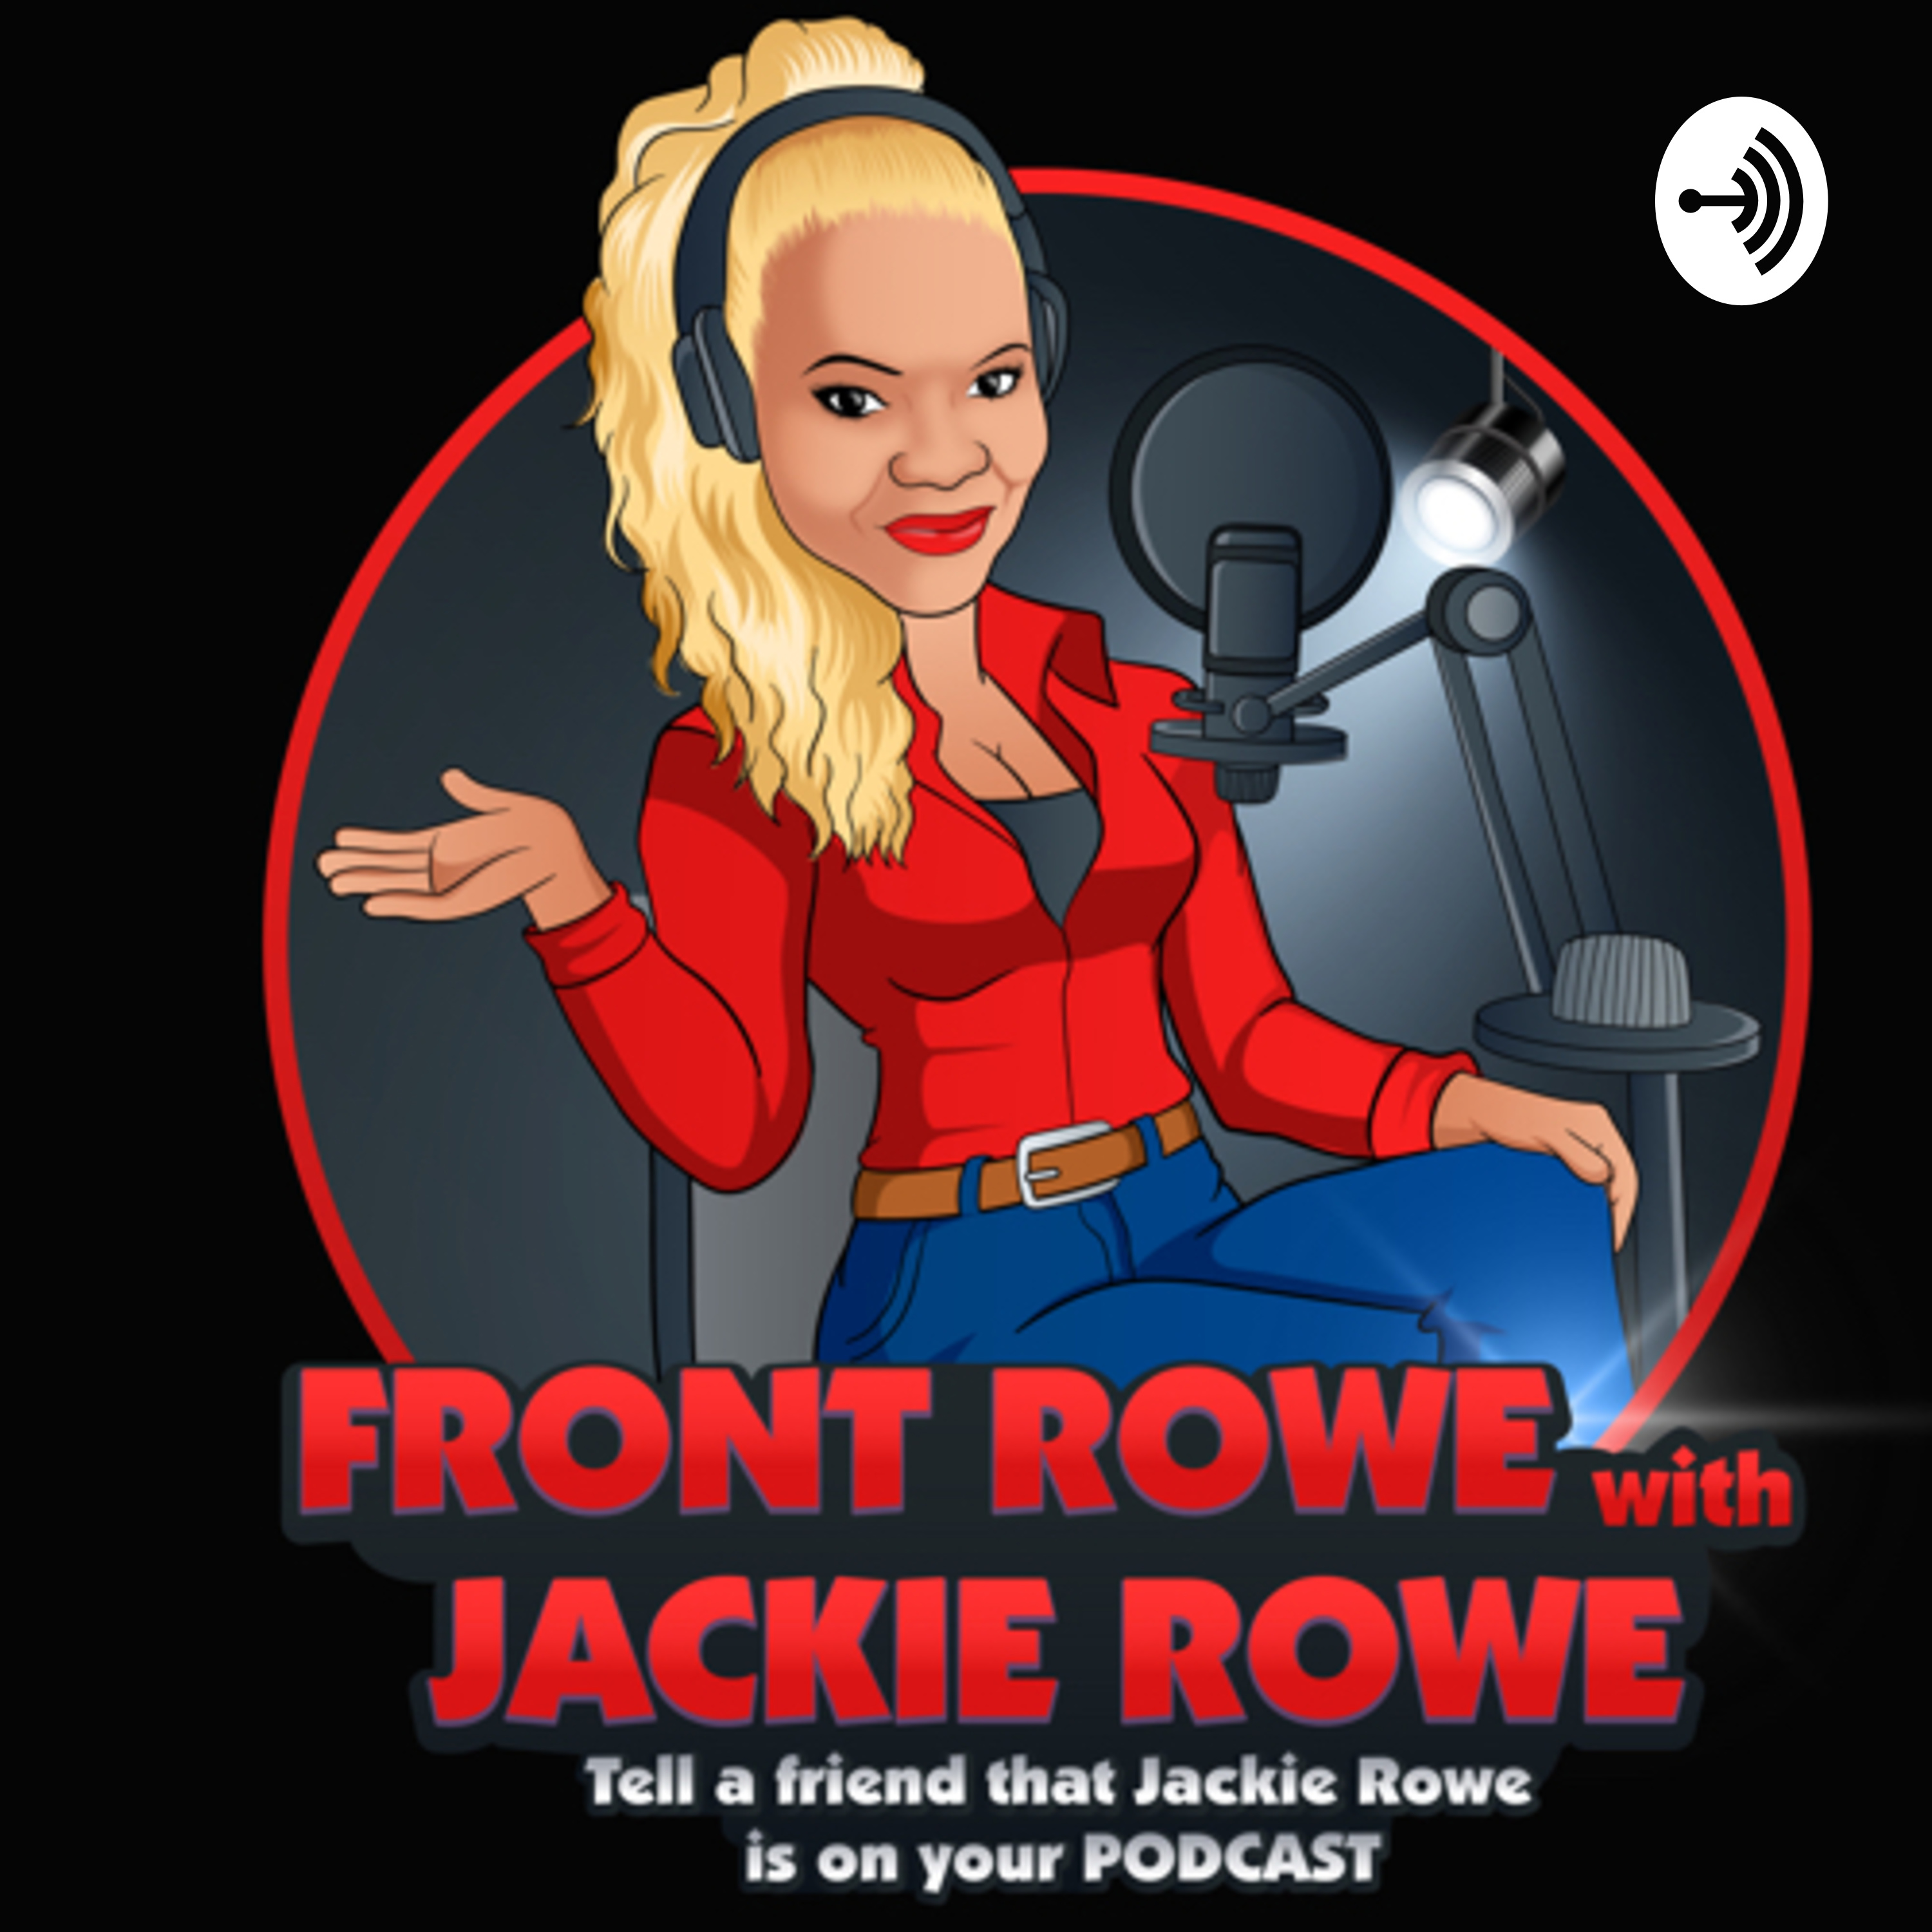 FRONT ROWE With JACKIE ROWE